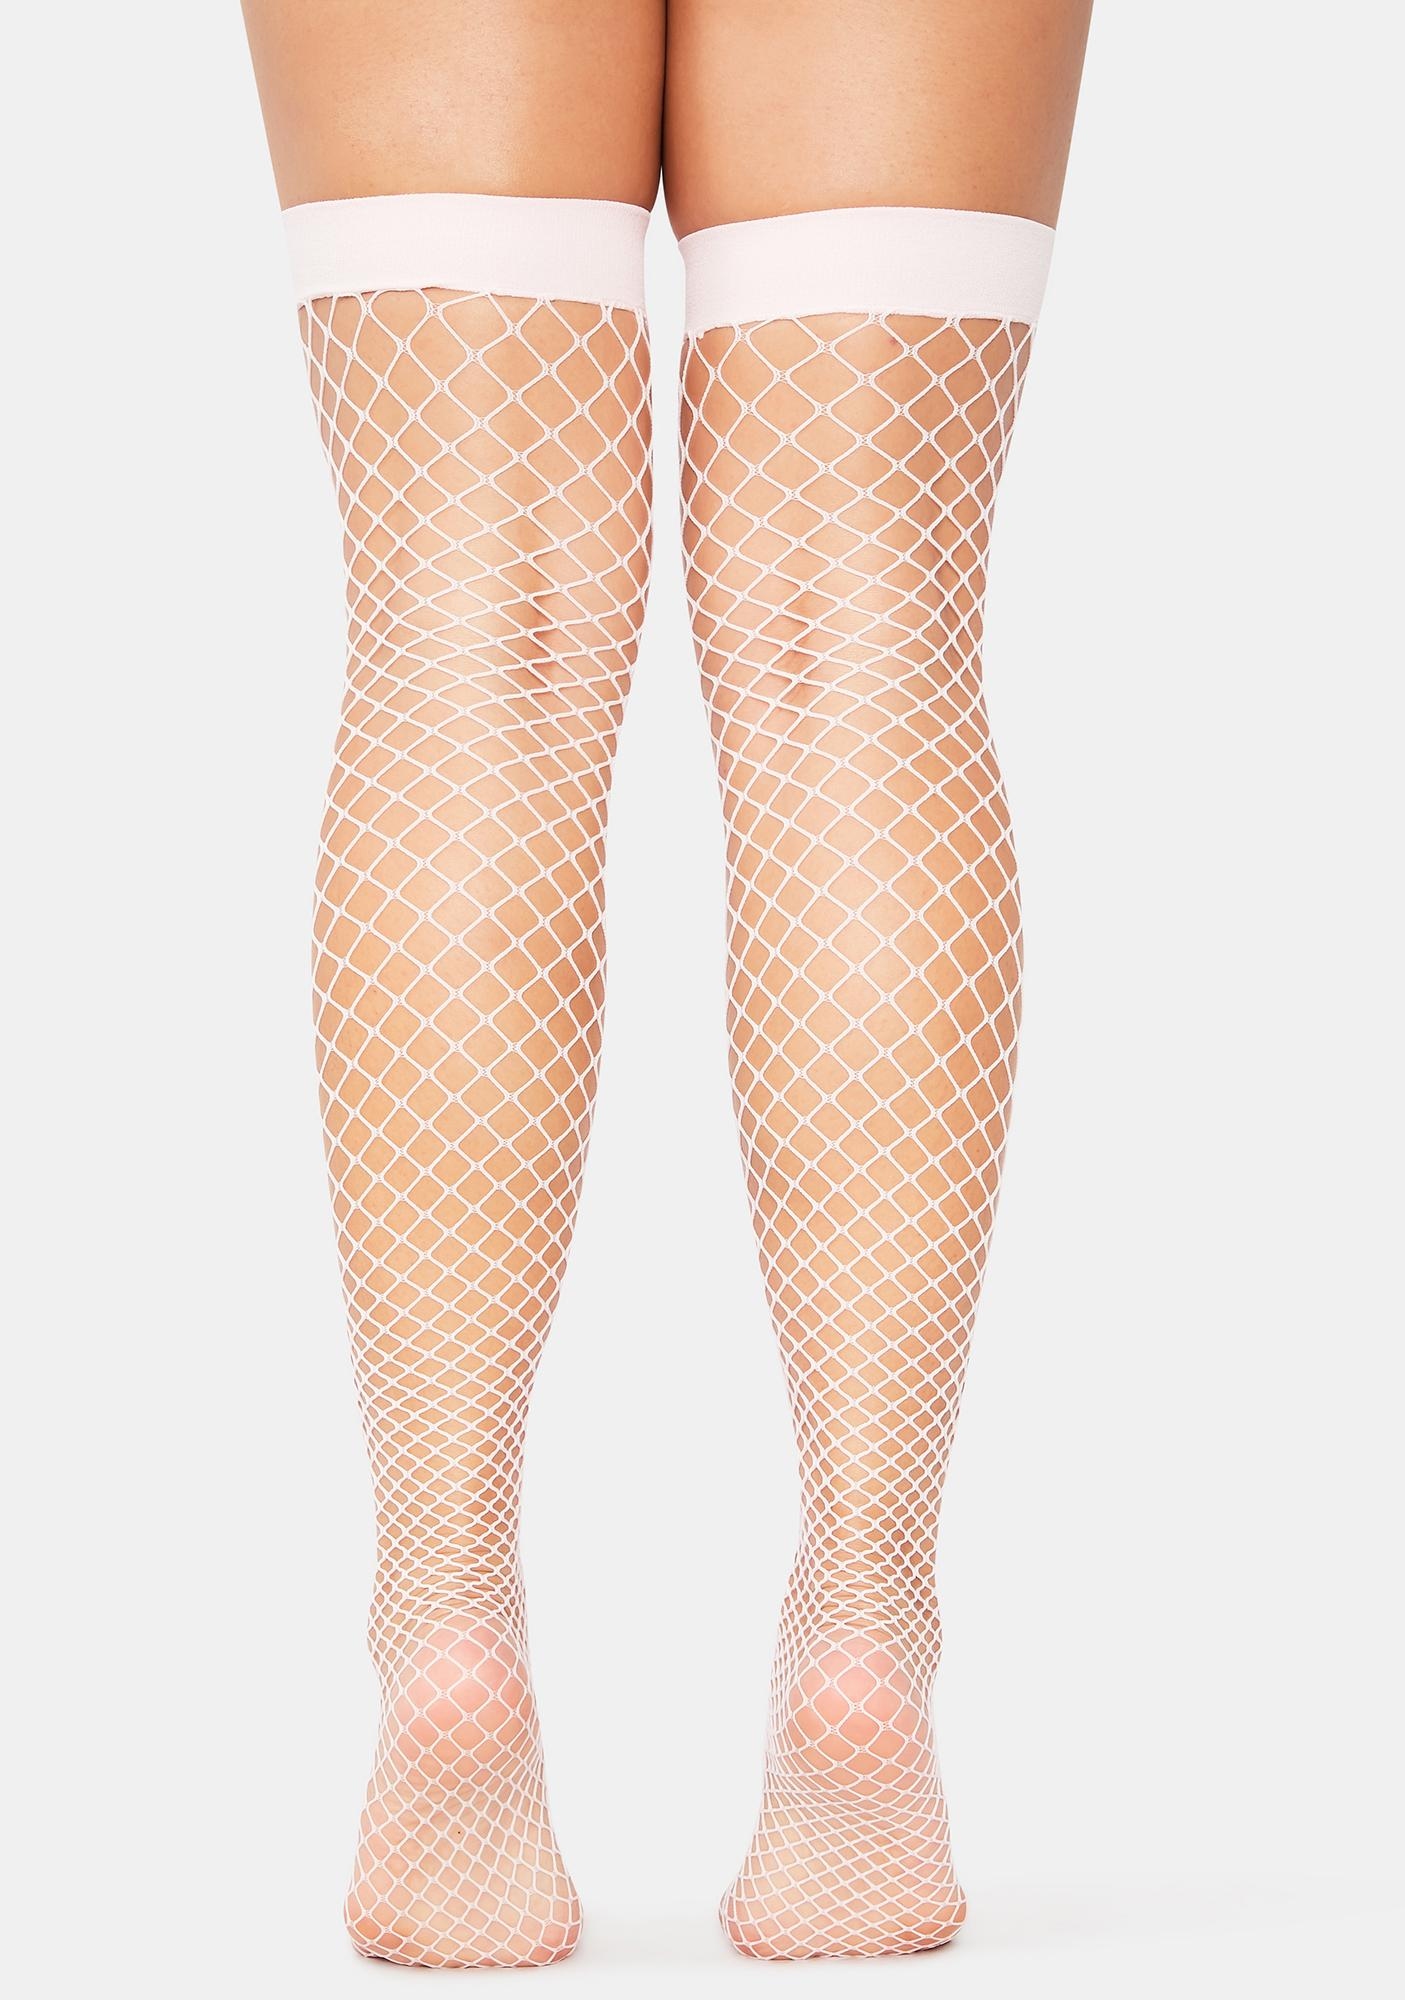 Lady Deadly Kisses Fishnet Thigh Highs